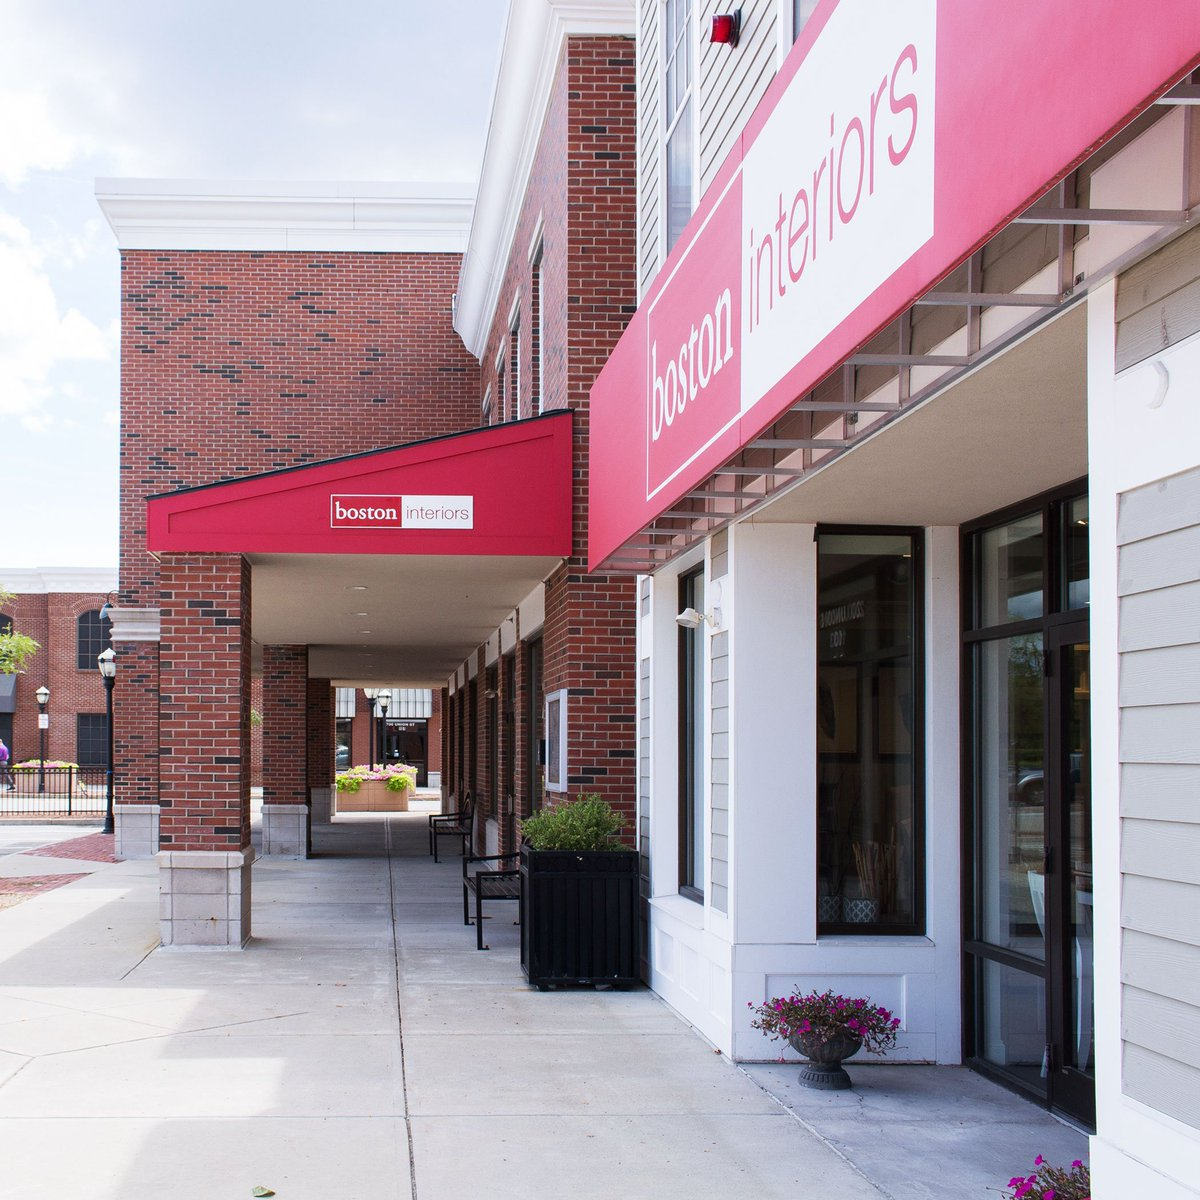 What Are You Up To This Weekend? Stop On In To One Of Our 9 New England  Locations U0026 Say U201cHiu201d Weu0027d Love To See You. Http://bit.ly/1SdlO5b  Pic.twitter.com/ ...